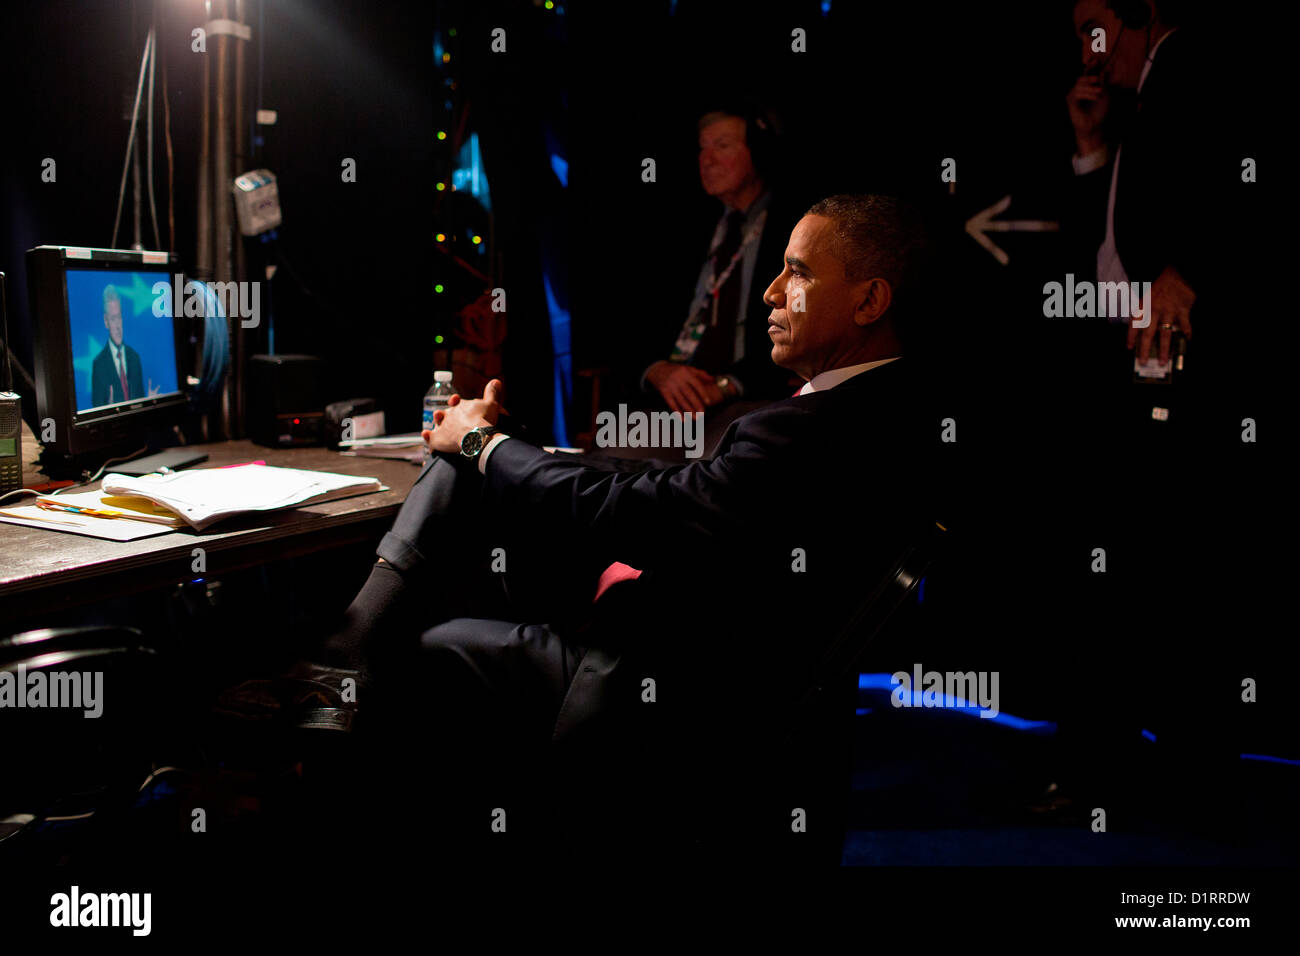 US President Barack Obama watches former President Bill Clinton speak from backstage at the Democratic National - Stock Image